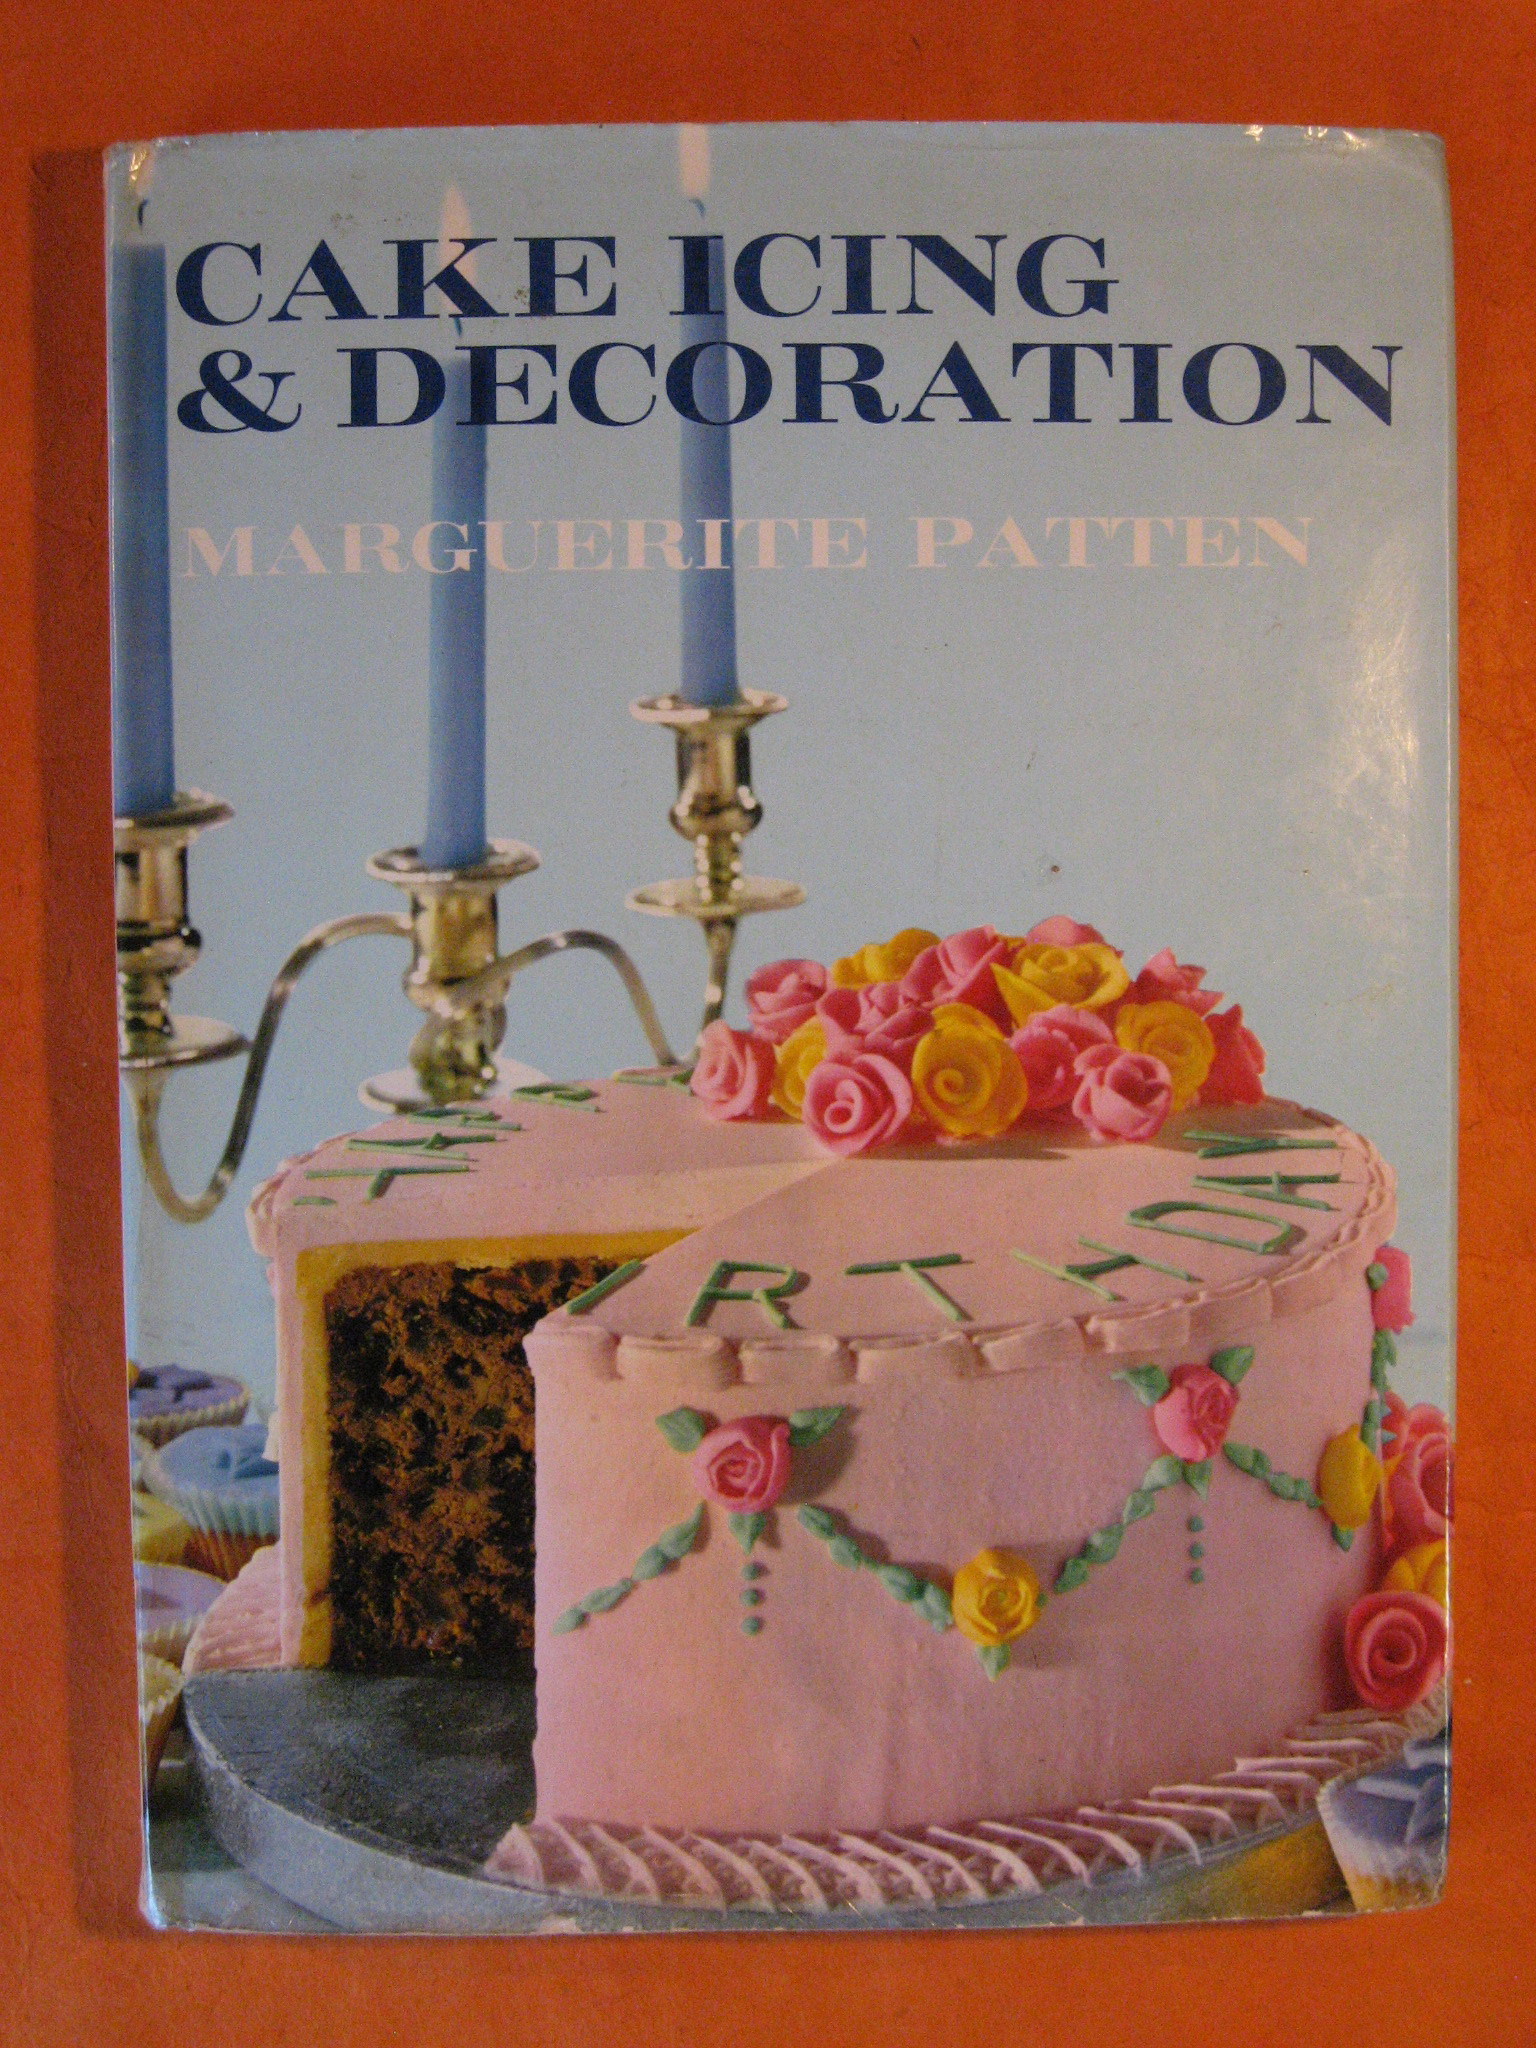 Cake Icing & Cake Decoration, Patten, Marguerite